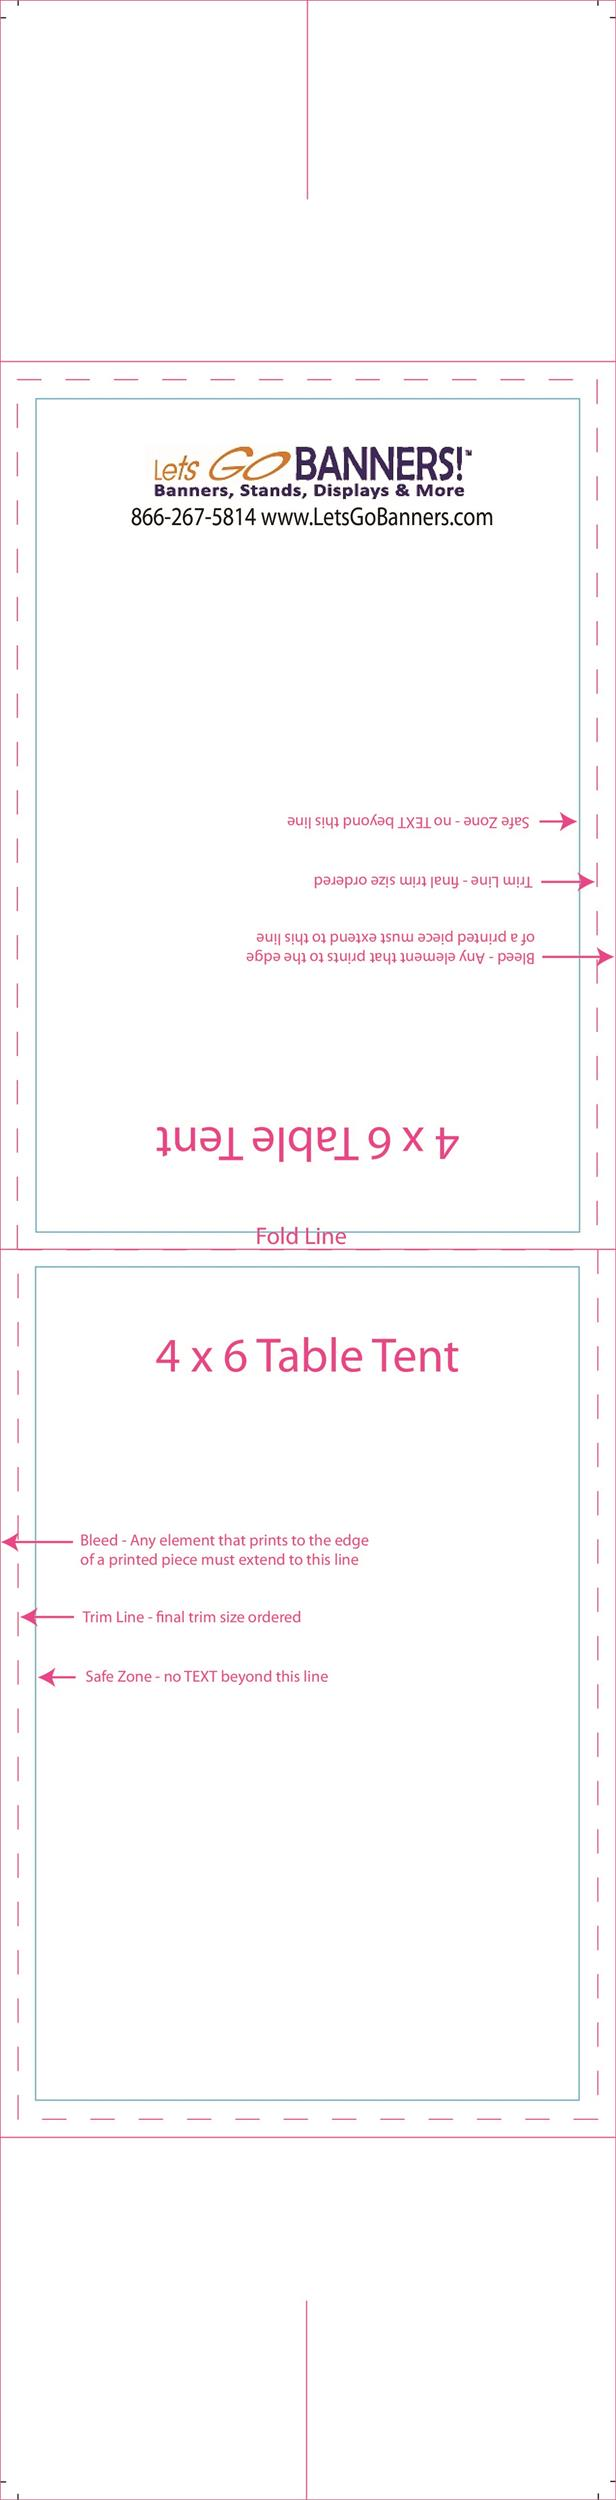 Free table tent template 11  sc 1 st  Template Lab & 16 Printable Table Tent Templates and Cards - Template Lab